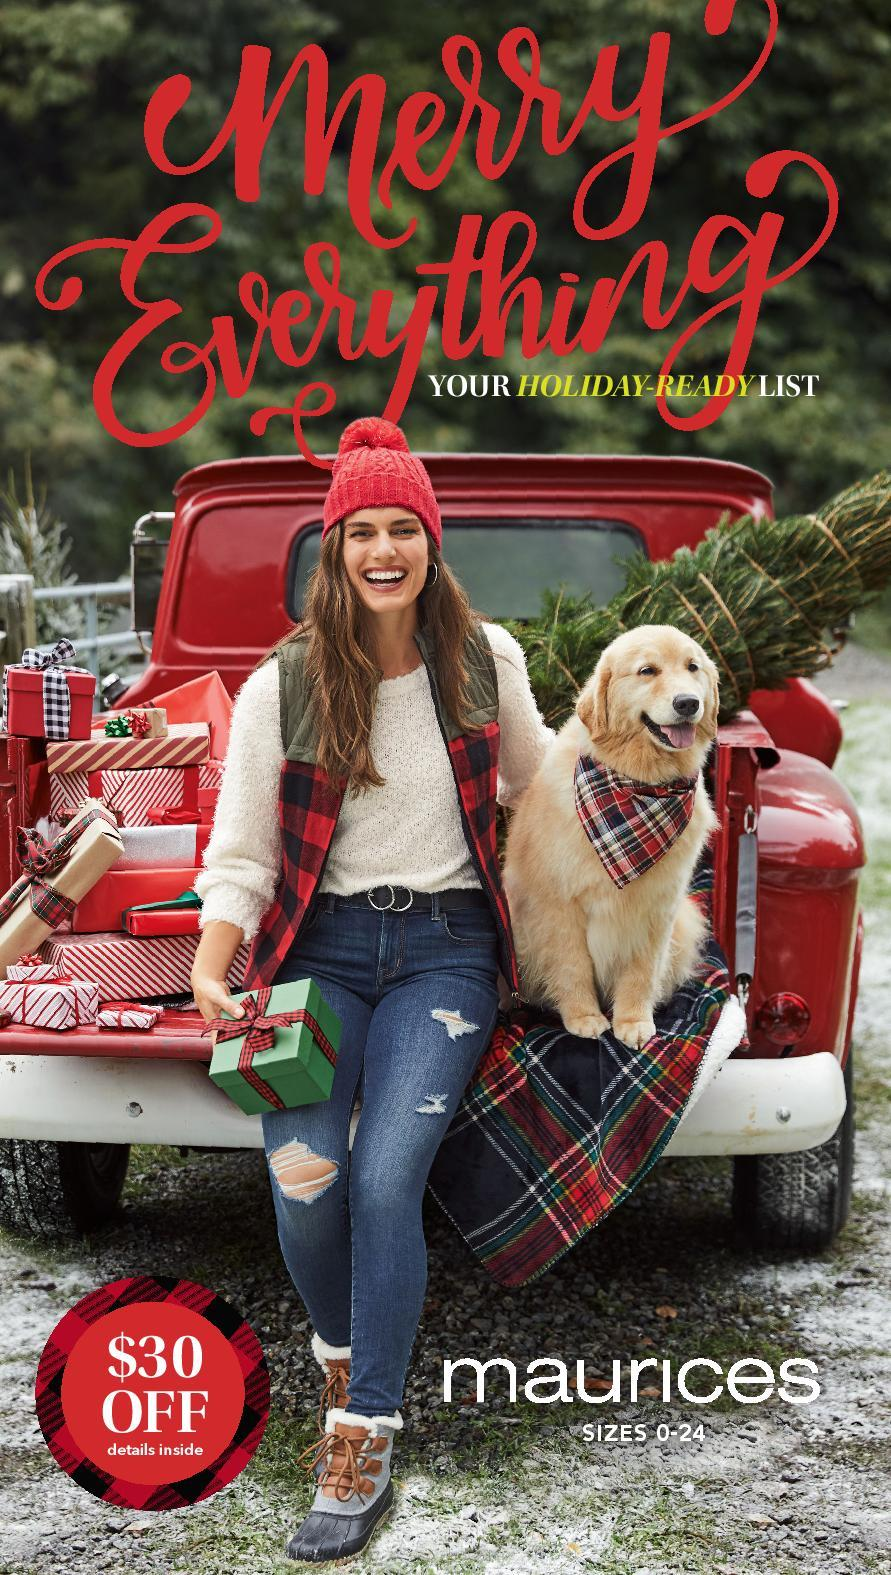 Maurices Black Friday Ads